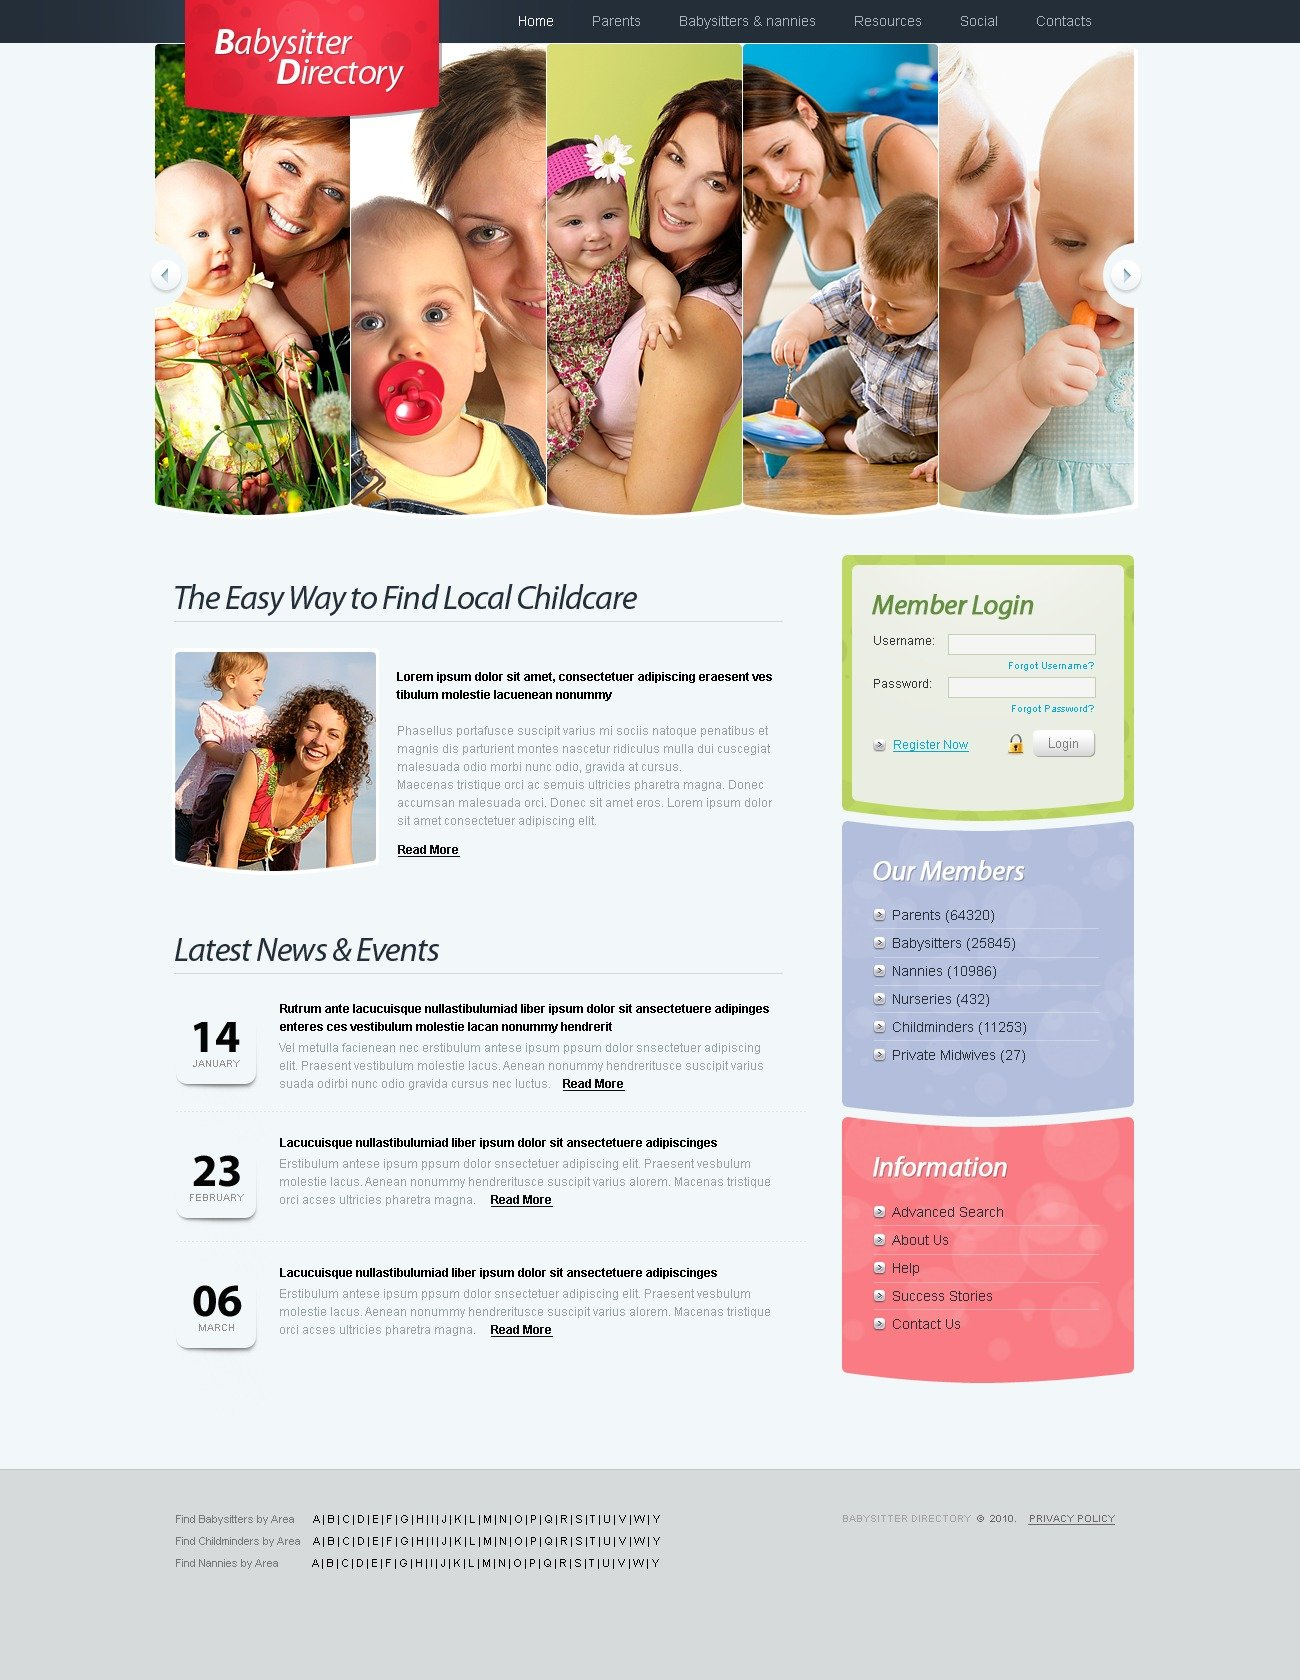 The Babysitter Directory PSD Design 54276, one of the best PSD templates of its kind (family, flash 8, wide), also known as babysitter directory PSD template, nanny PSD template, nurse PSD template, baby PSD template, children PSD template, child PSD template, kids PSD template, parents PSD template, family care PSD template, help PSD template, resume PSD template, services company PSD template, profile PSD template, prices PSD template, order PSD template, harmony PSD template, hearth PSD template, home PSD template, relationship PSD template, close care PSD template, happiness PSD template, education PSD template, youth PSD template, health PSD template, advices PSD template, event PSD template, entertainment PSD template, information PSD template, support PSD template, ho and related with babysitter directory, nanny, nurse, baby, children, child, kids, parents, family care, help, resume, services company, profile, prices, order, harmony, hearth, home, relationship, close care, happiness, education, youth, health, advices, event, entertainment, information, support, ho, etc.